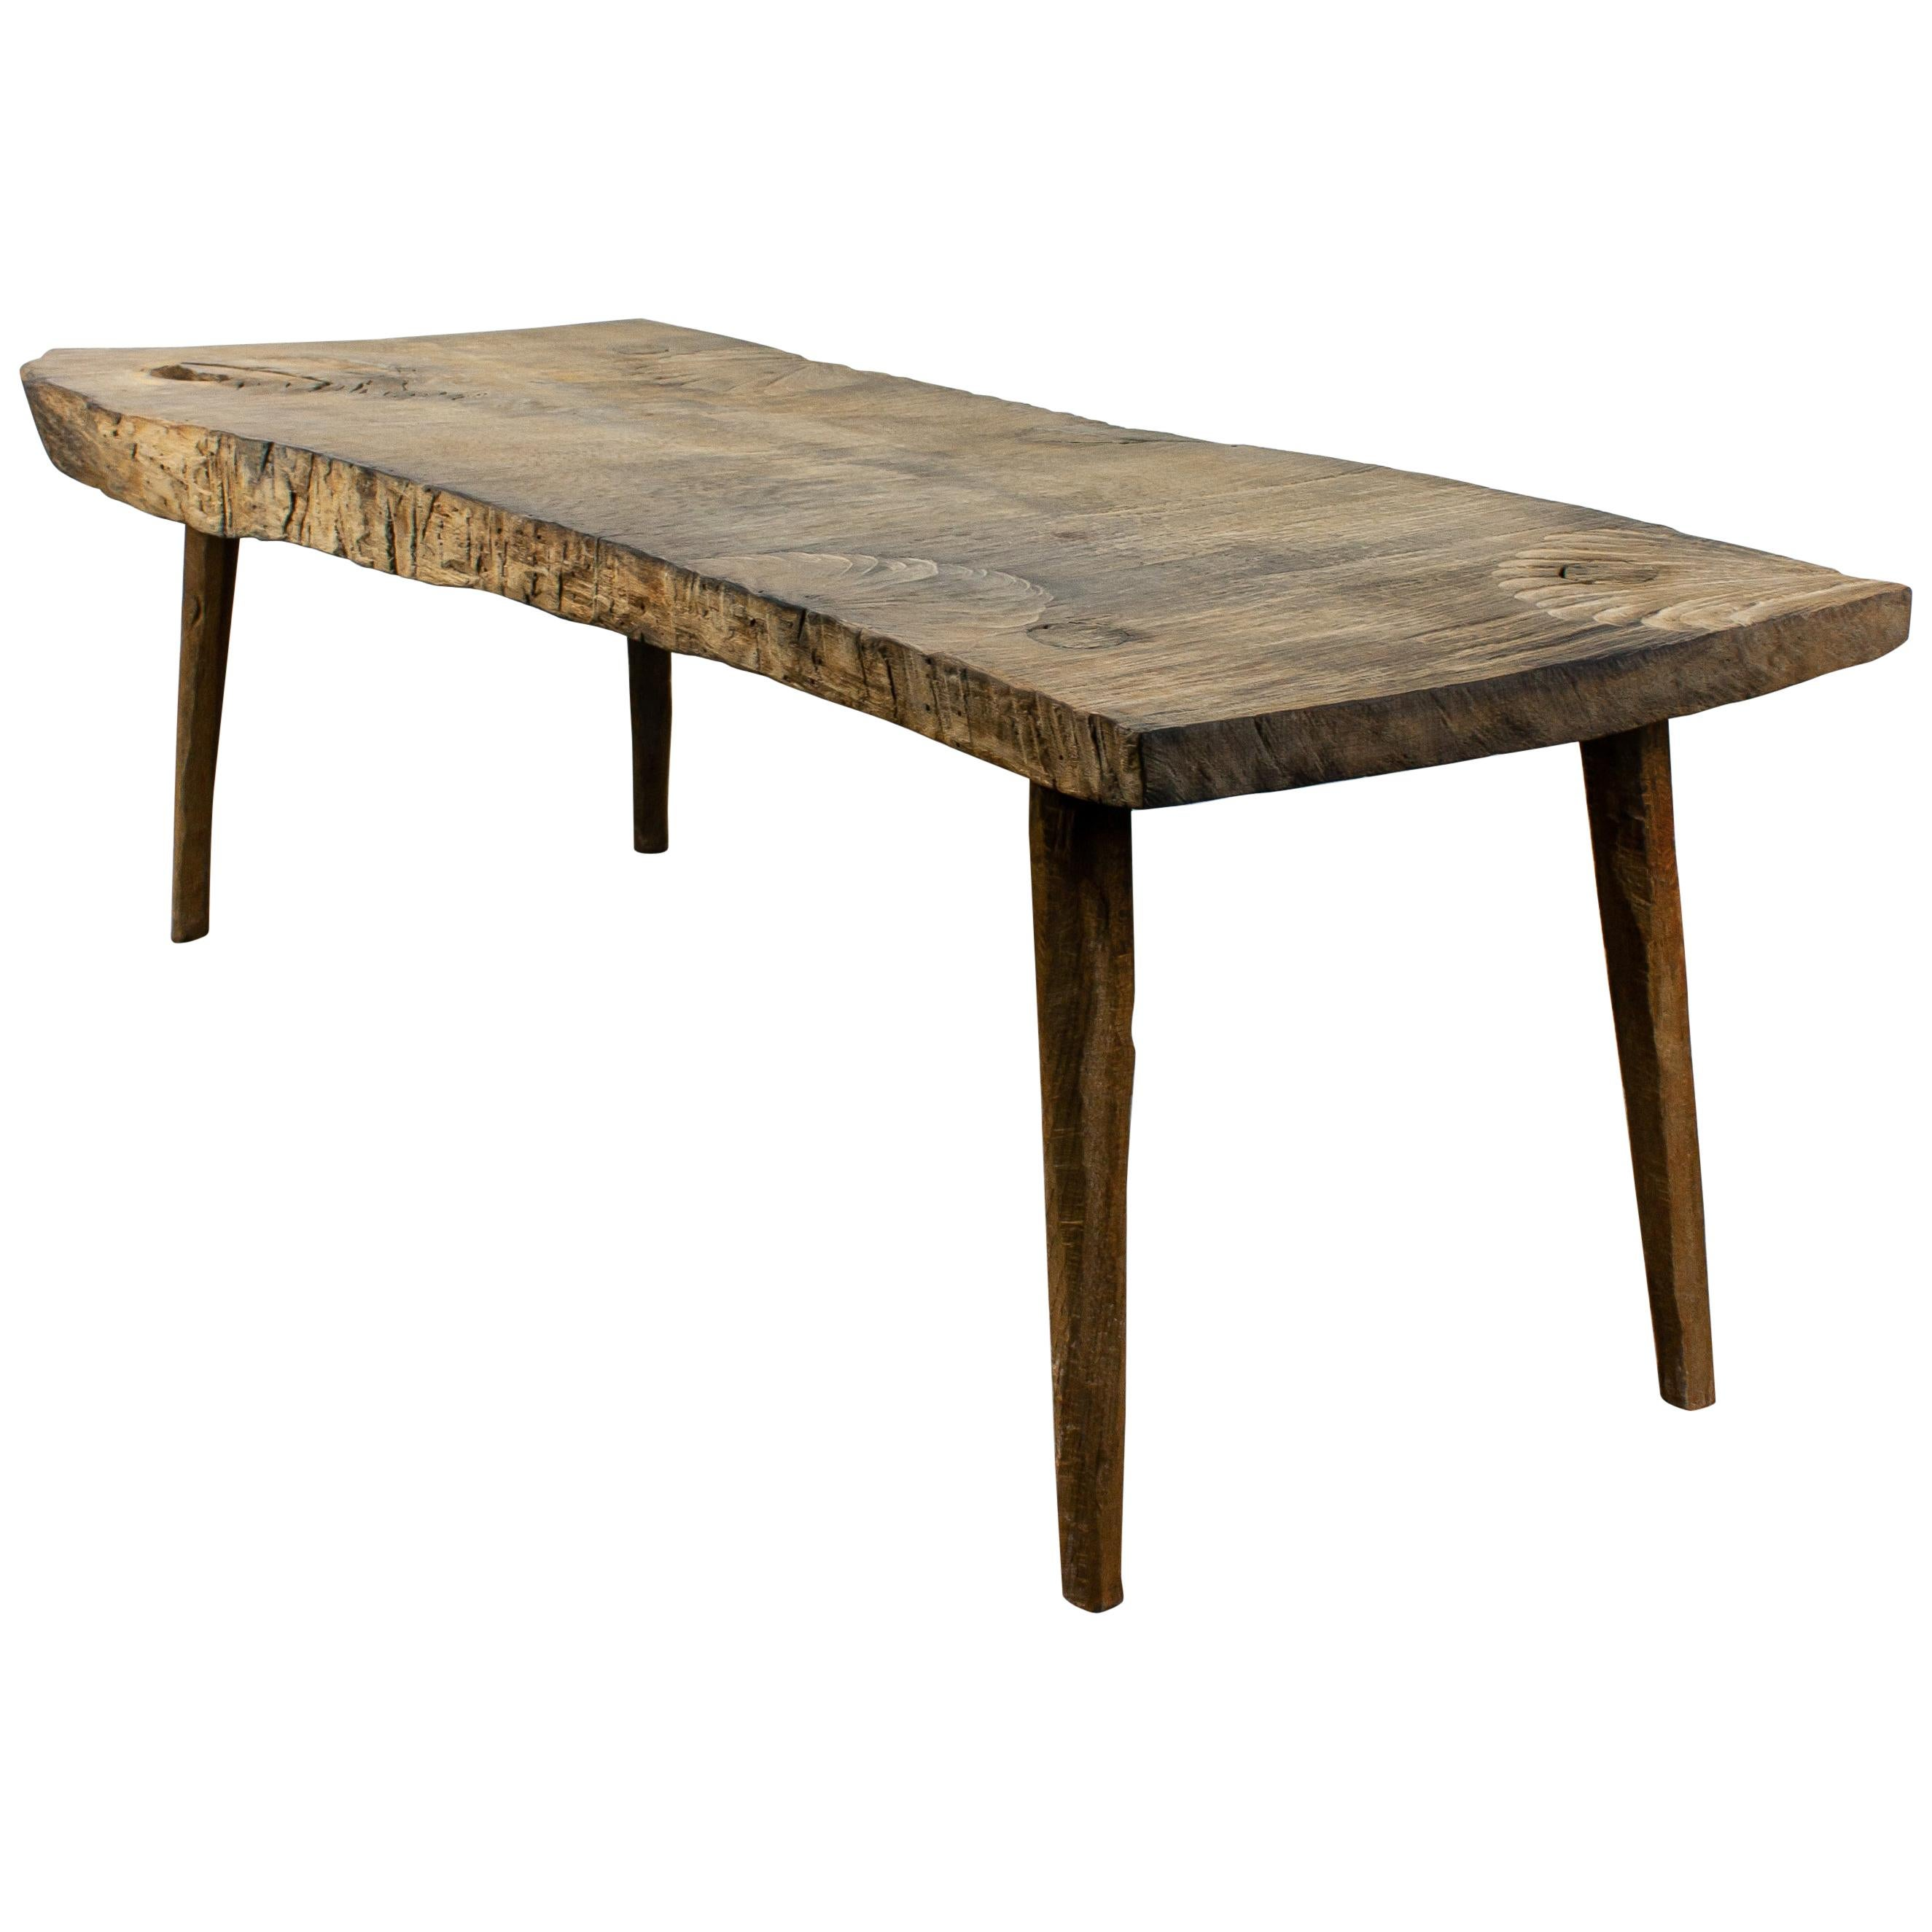 Contemporary Brutalist Style Small Table #6 in Solid Oak and Linseed Oil